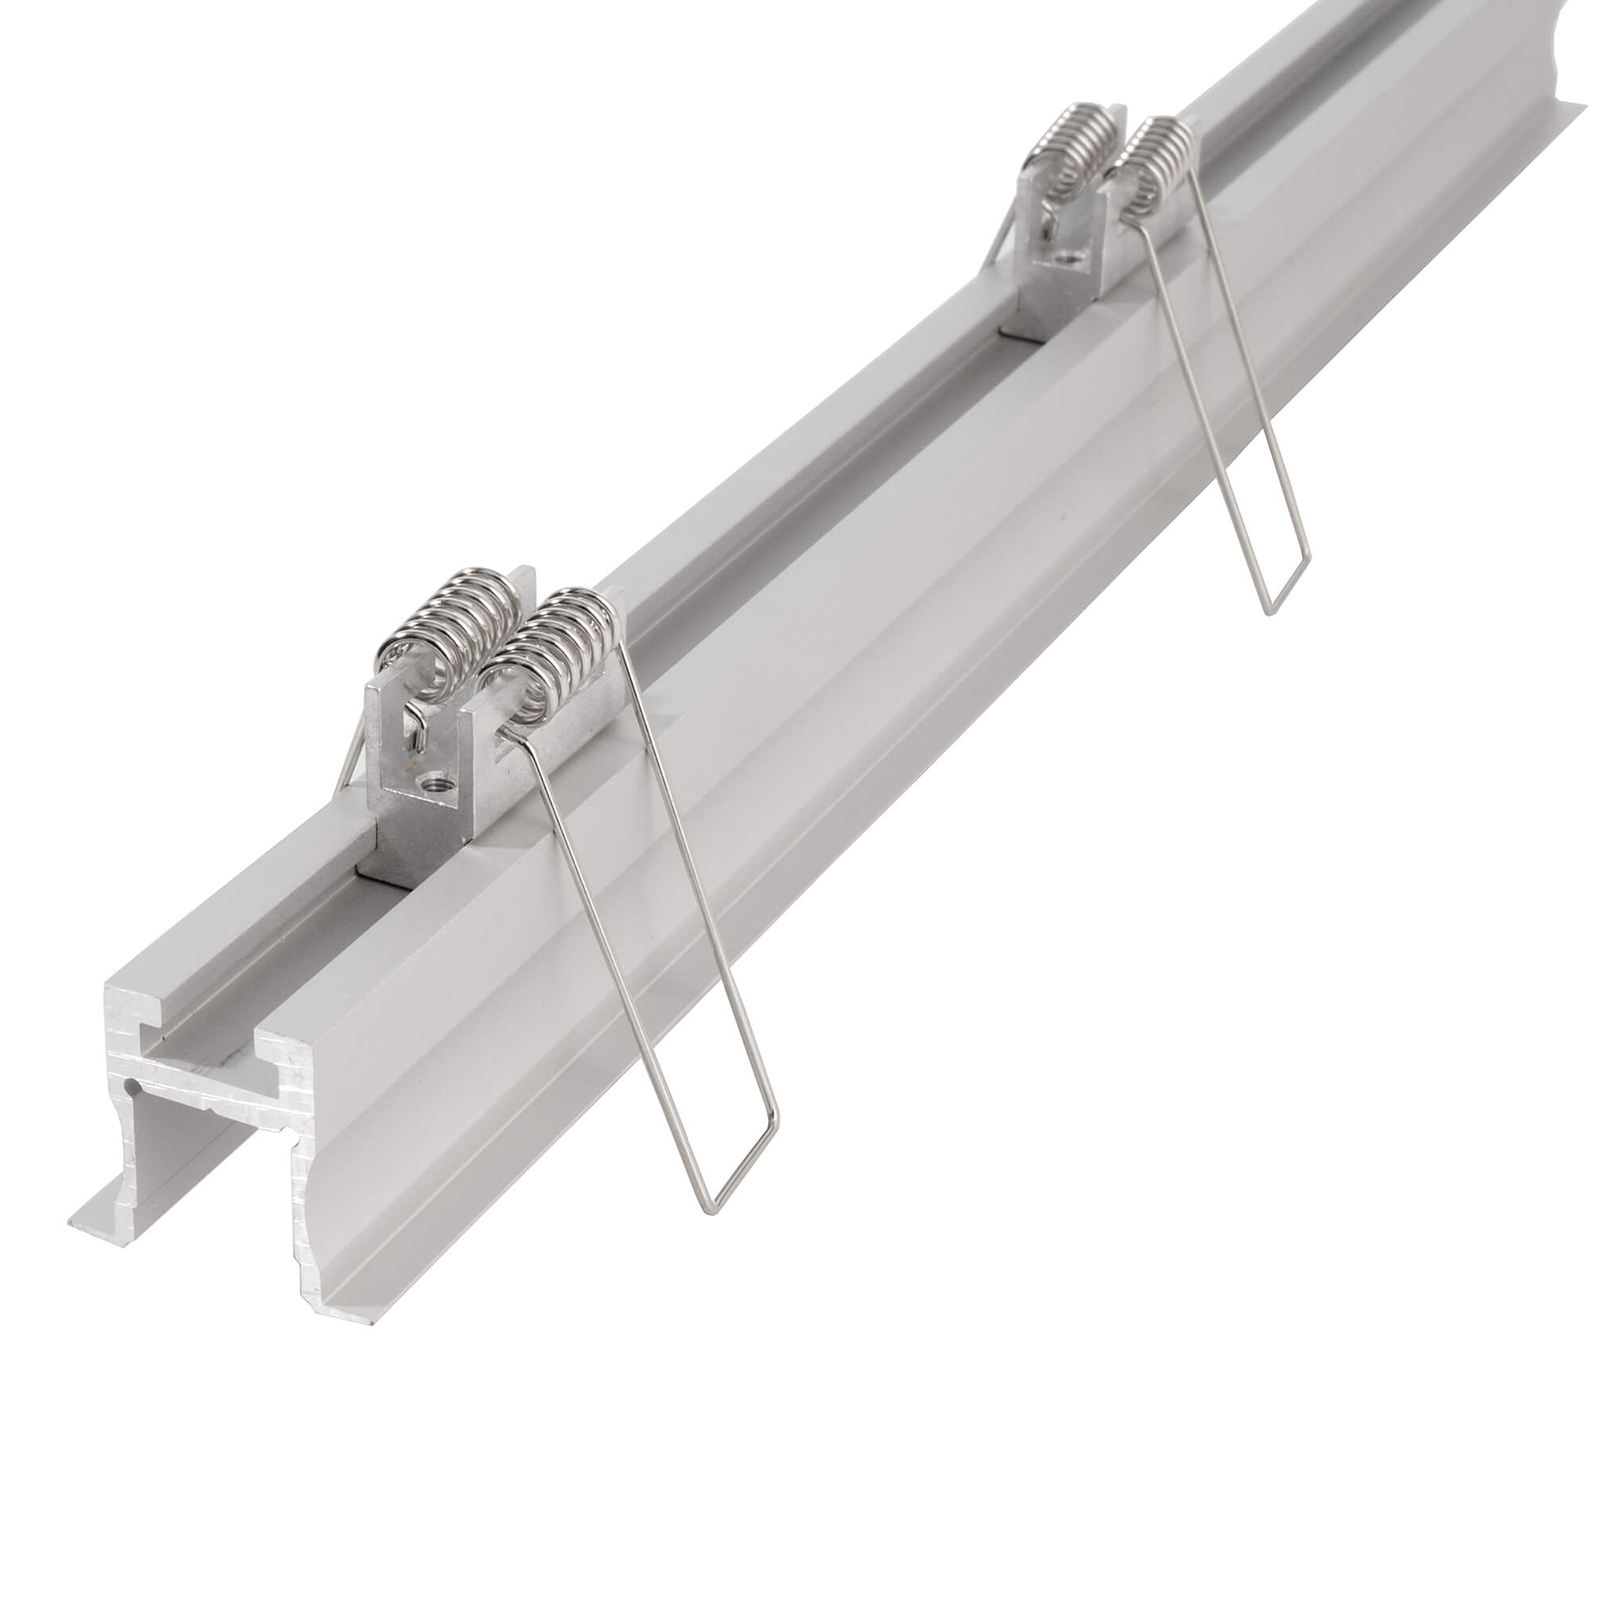 "Aluminium profile recessed ""Nutch-Profile linear profile for led strips with fins to spring for the collection"